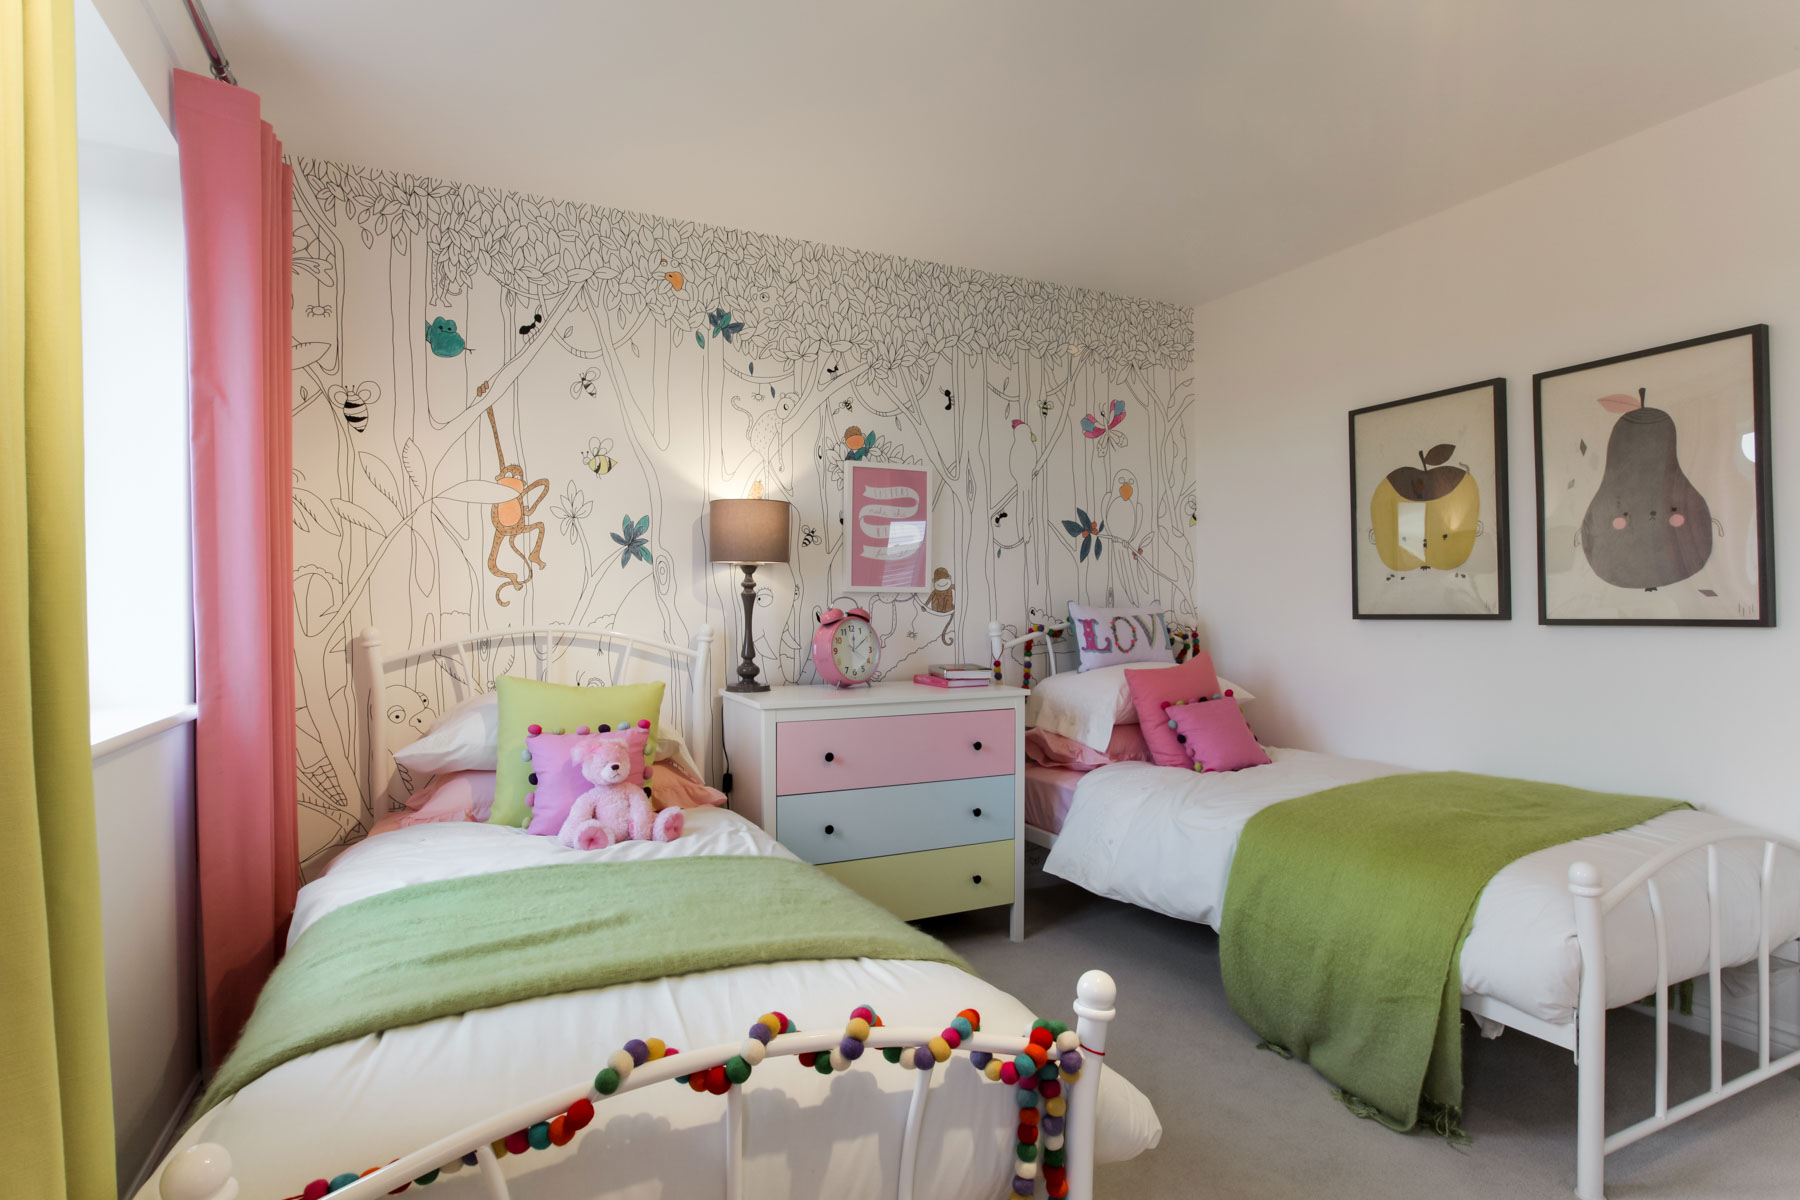 Living Room How To Design Room how to design a childs room taylor wimpey room